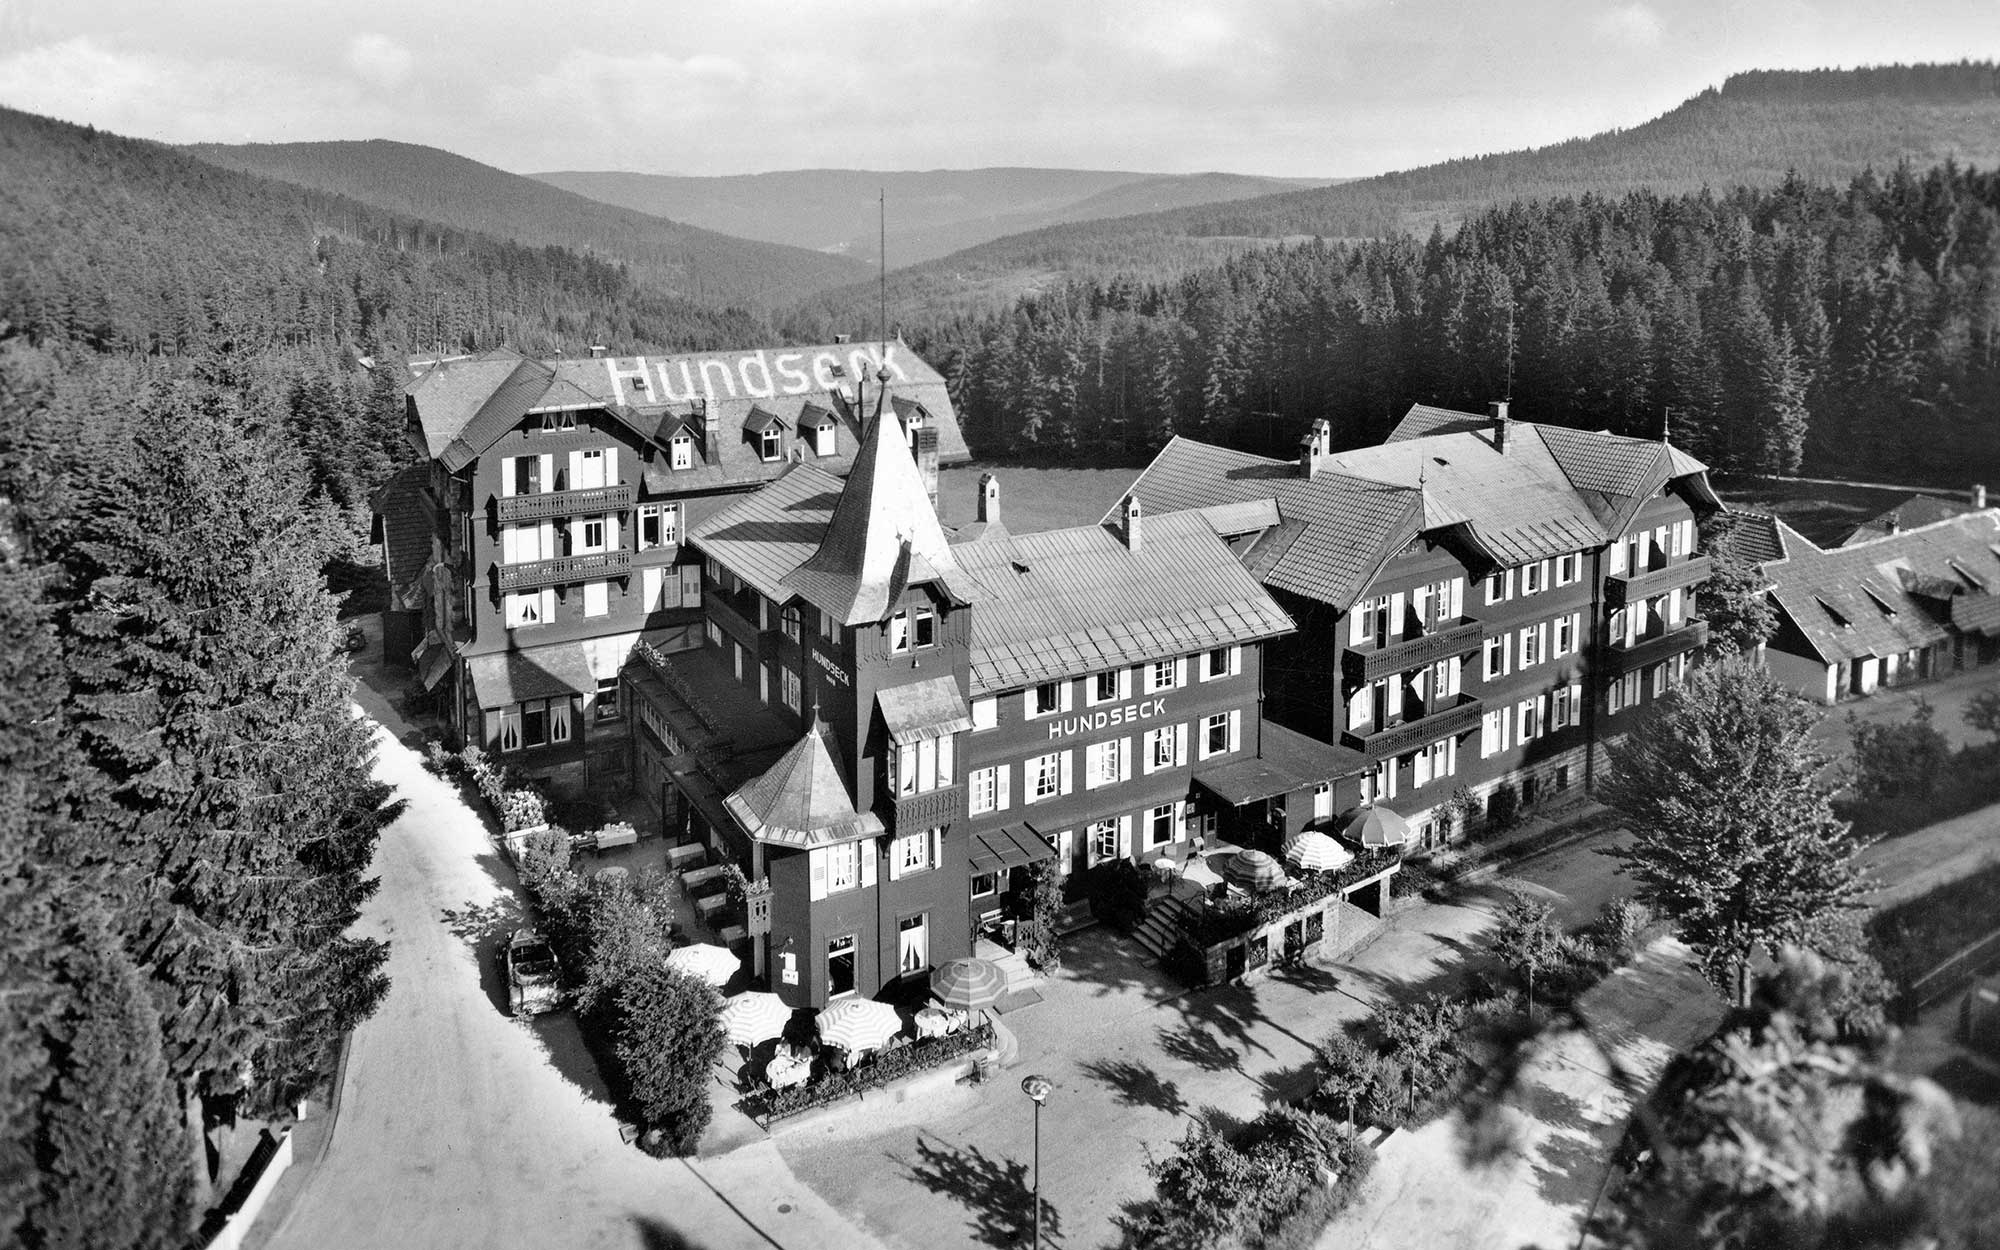 Hundseck Hotel, Germany, abandoned places